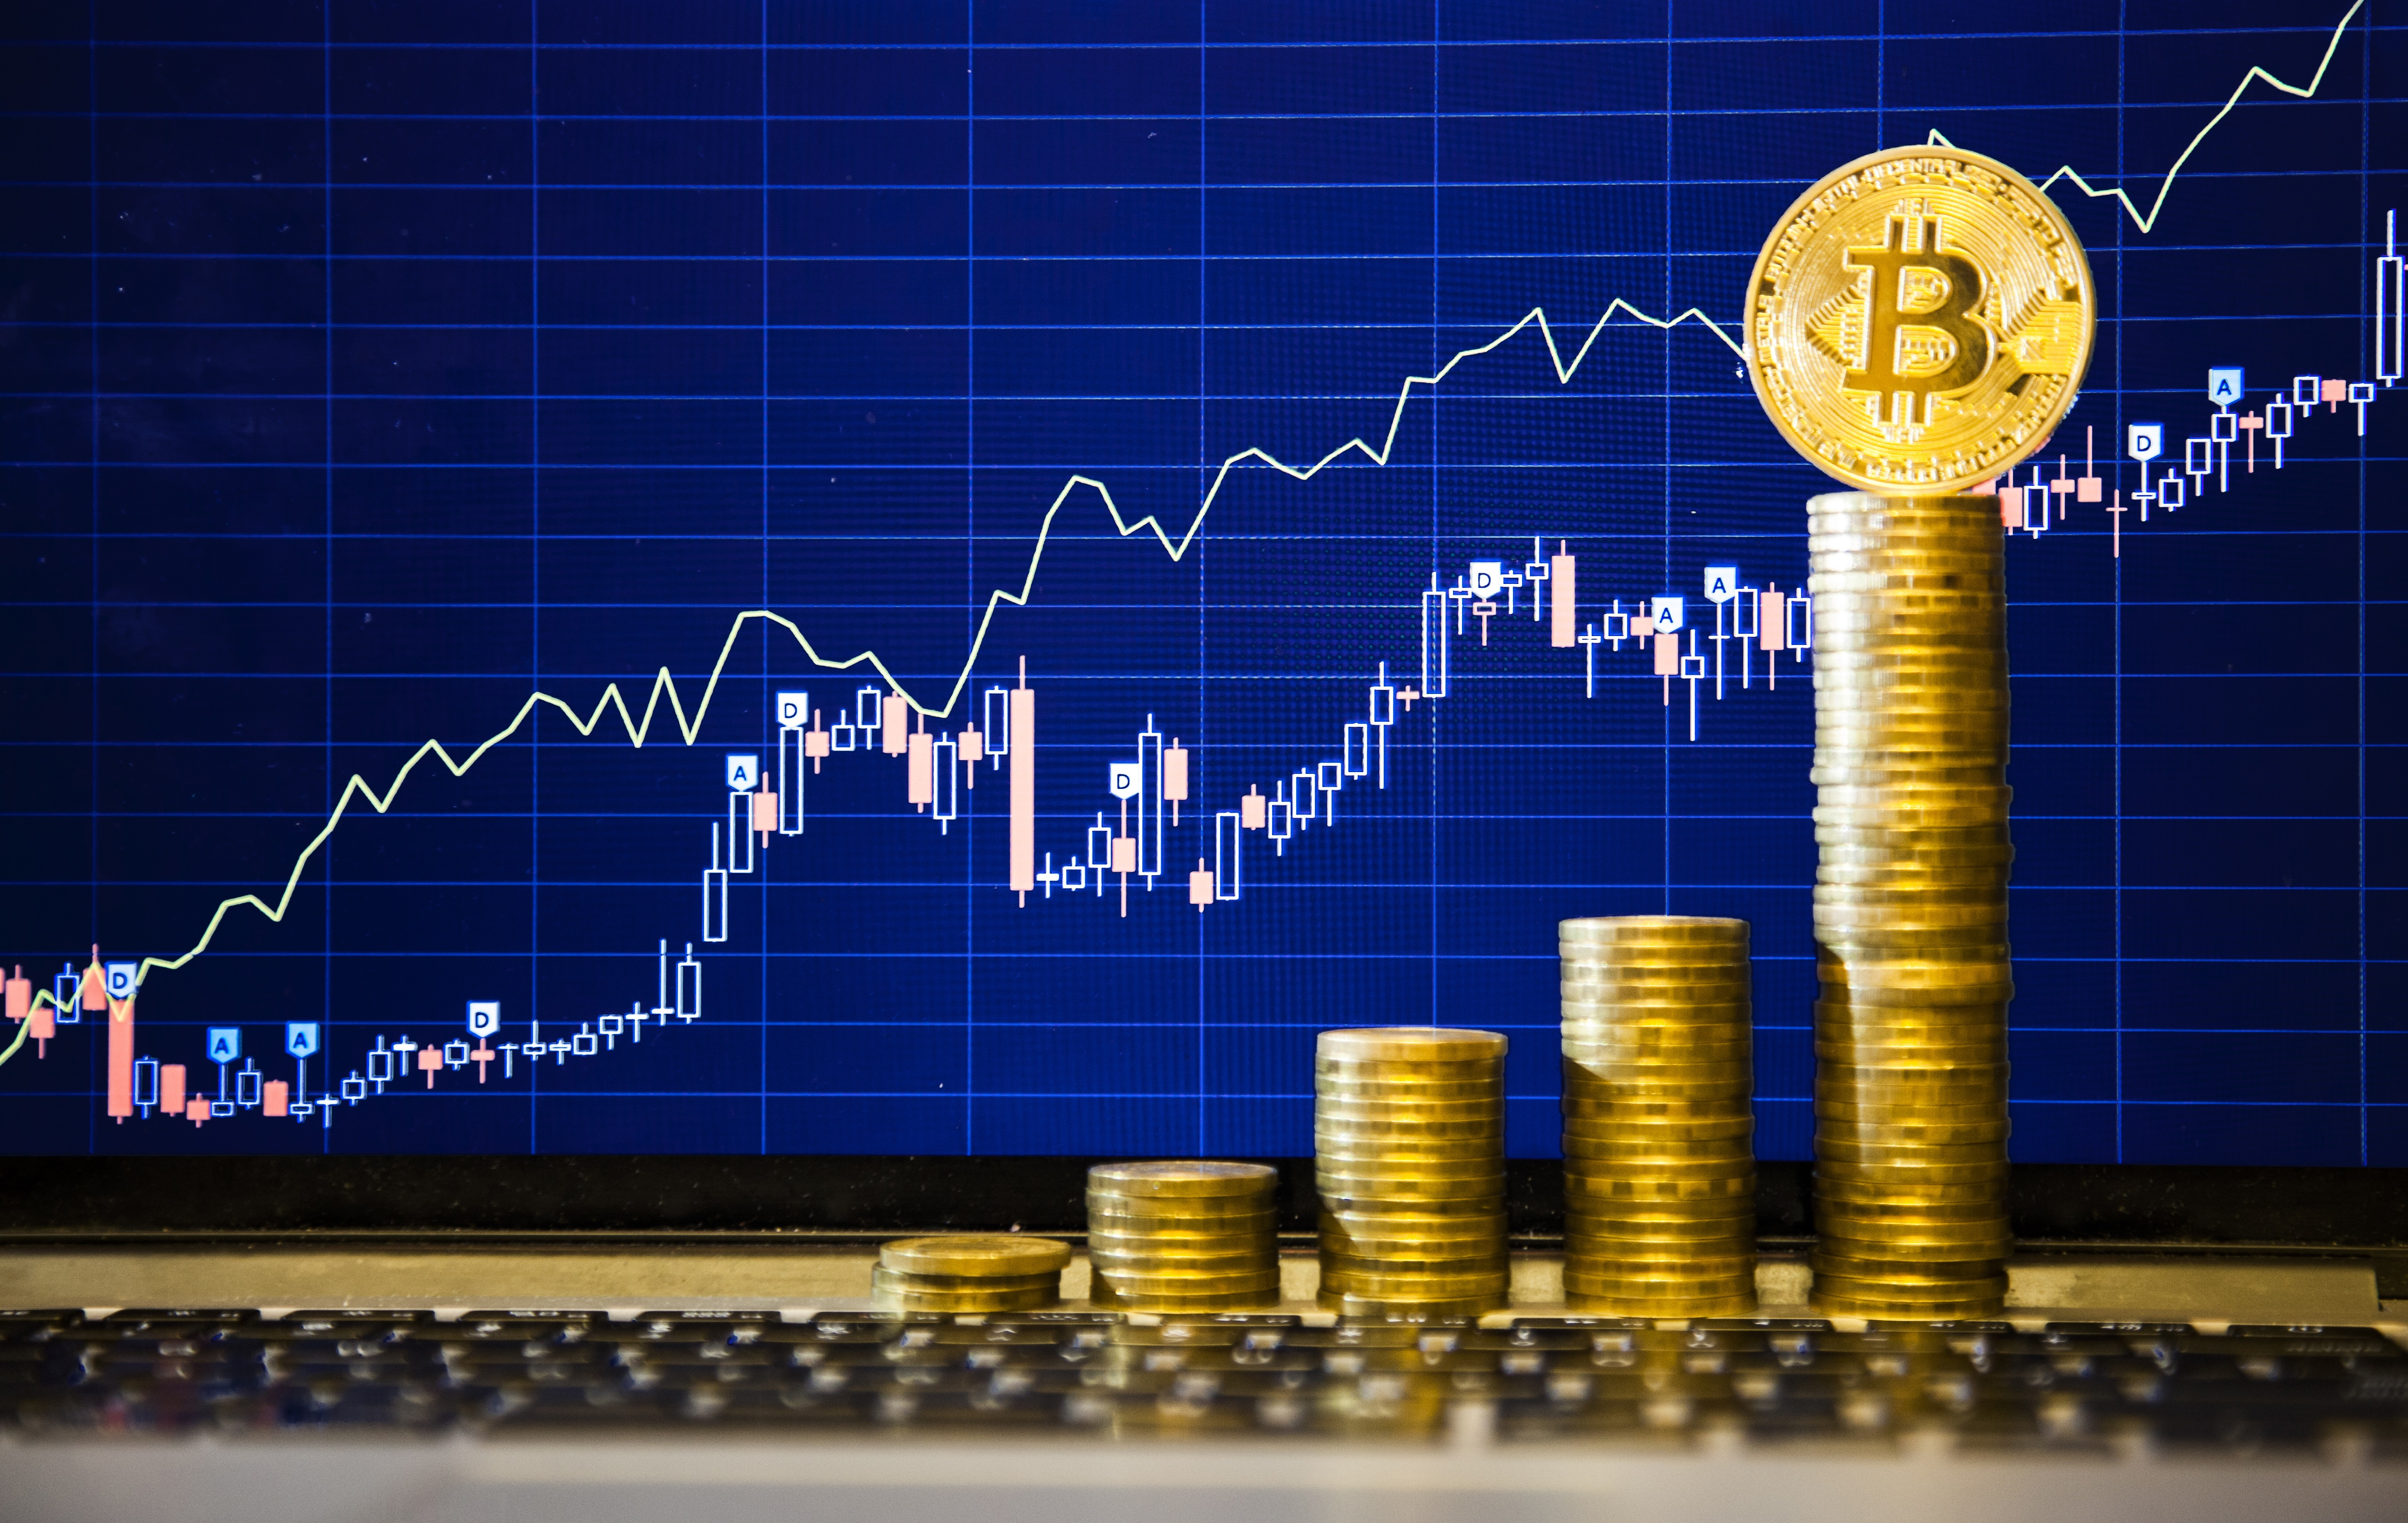 Japan buy bitcoin will litecoin increase in value bitcoin world capital japans secret billion dollar plan for cryptocurrency price boom ccuart Image collections